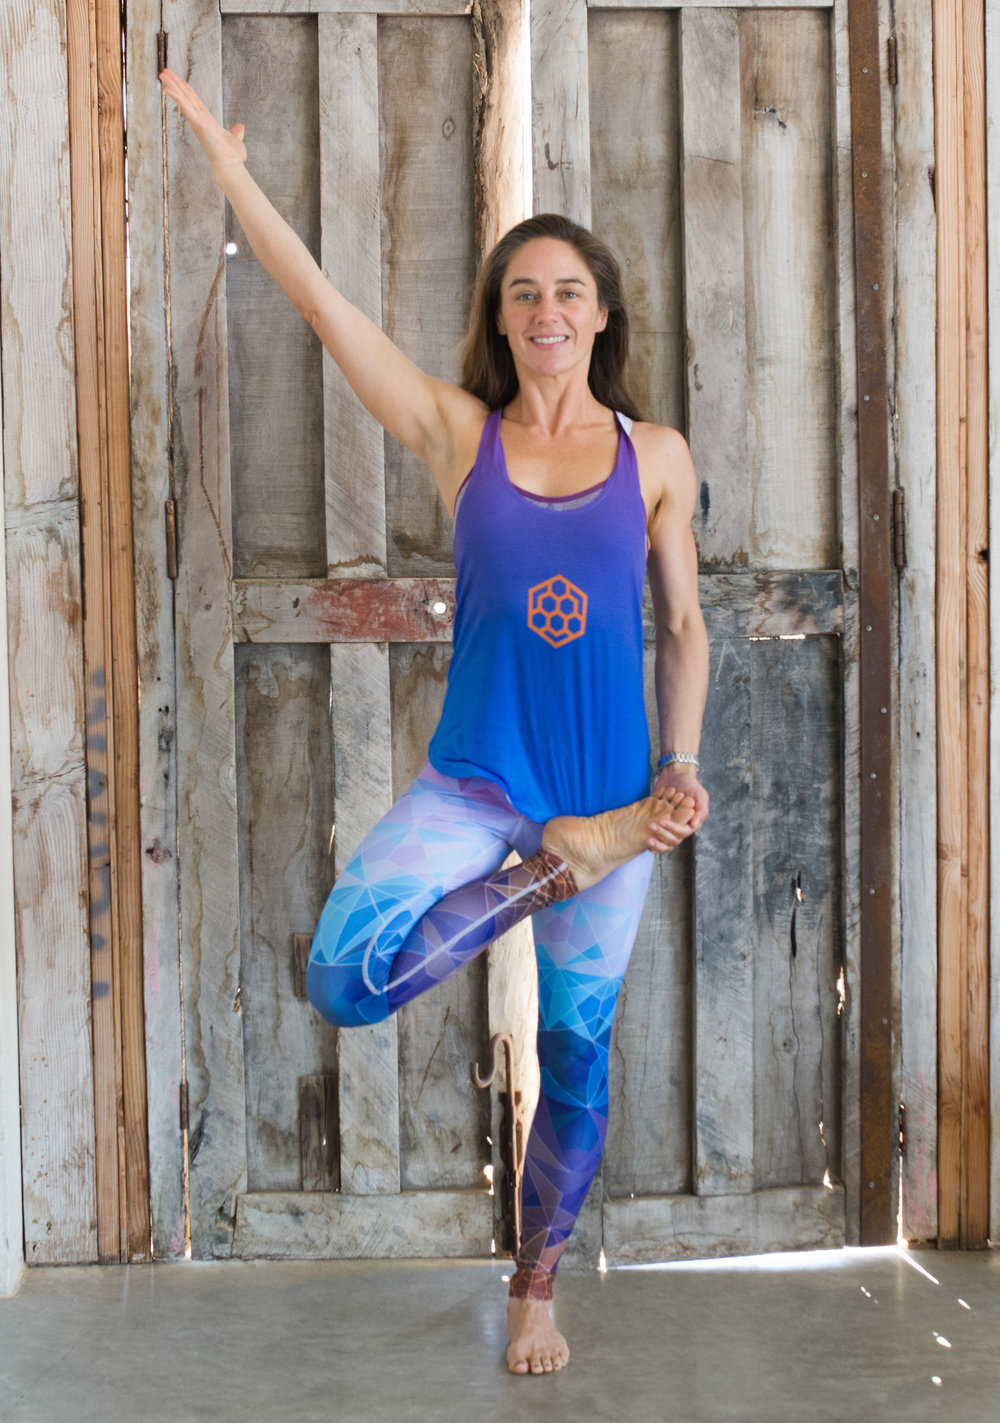 Casie Hall - Casie Hall is the owner of Nectar Flow Yoga in Spicewood, Texas. Her classes are informed by her interest in anatomy and alignment. With Casie we'll explore how the 5 elements relate to our health through the practice of asana and Ayurveda.Read her full bio here.